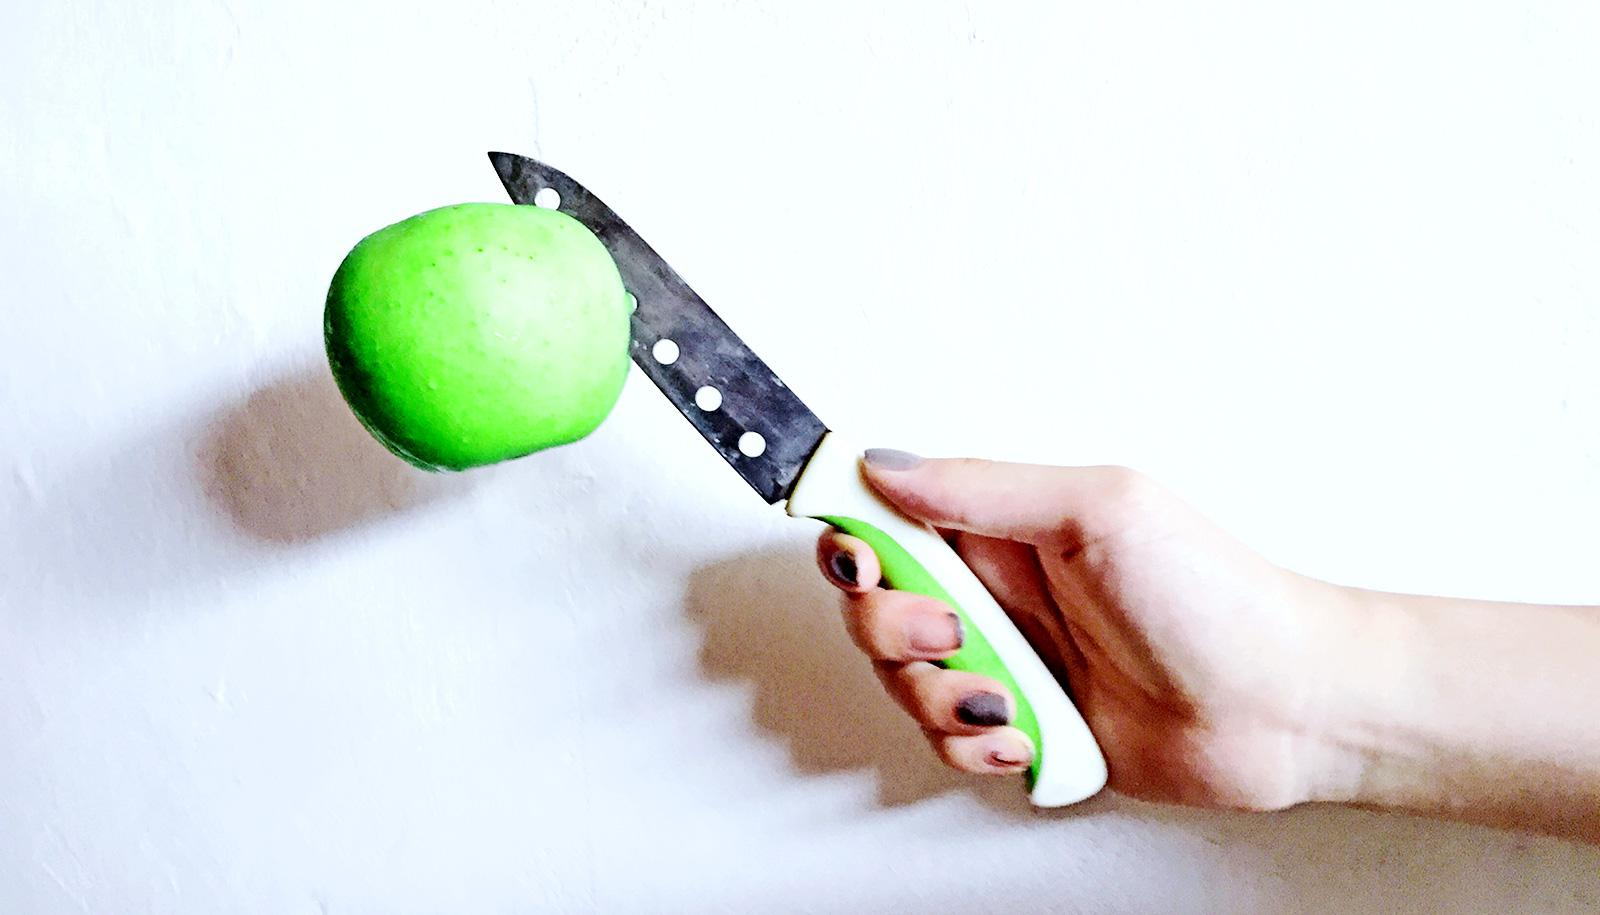 knife in apple in hand (food choices concept)